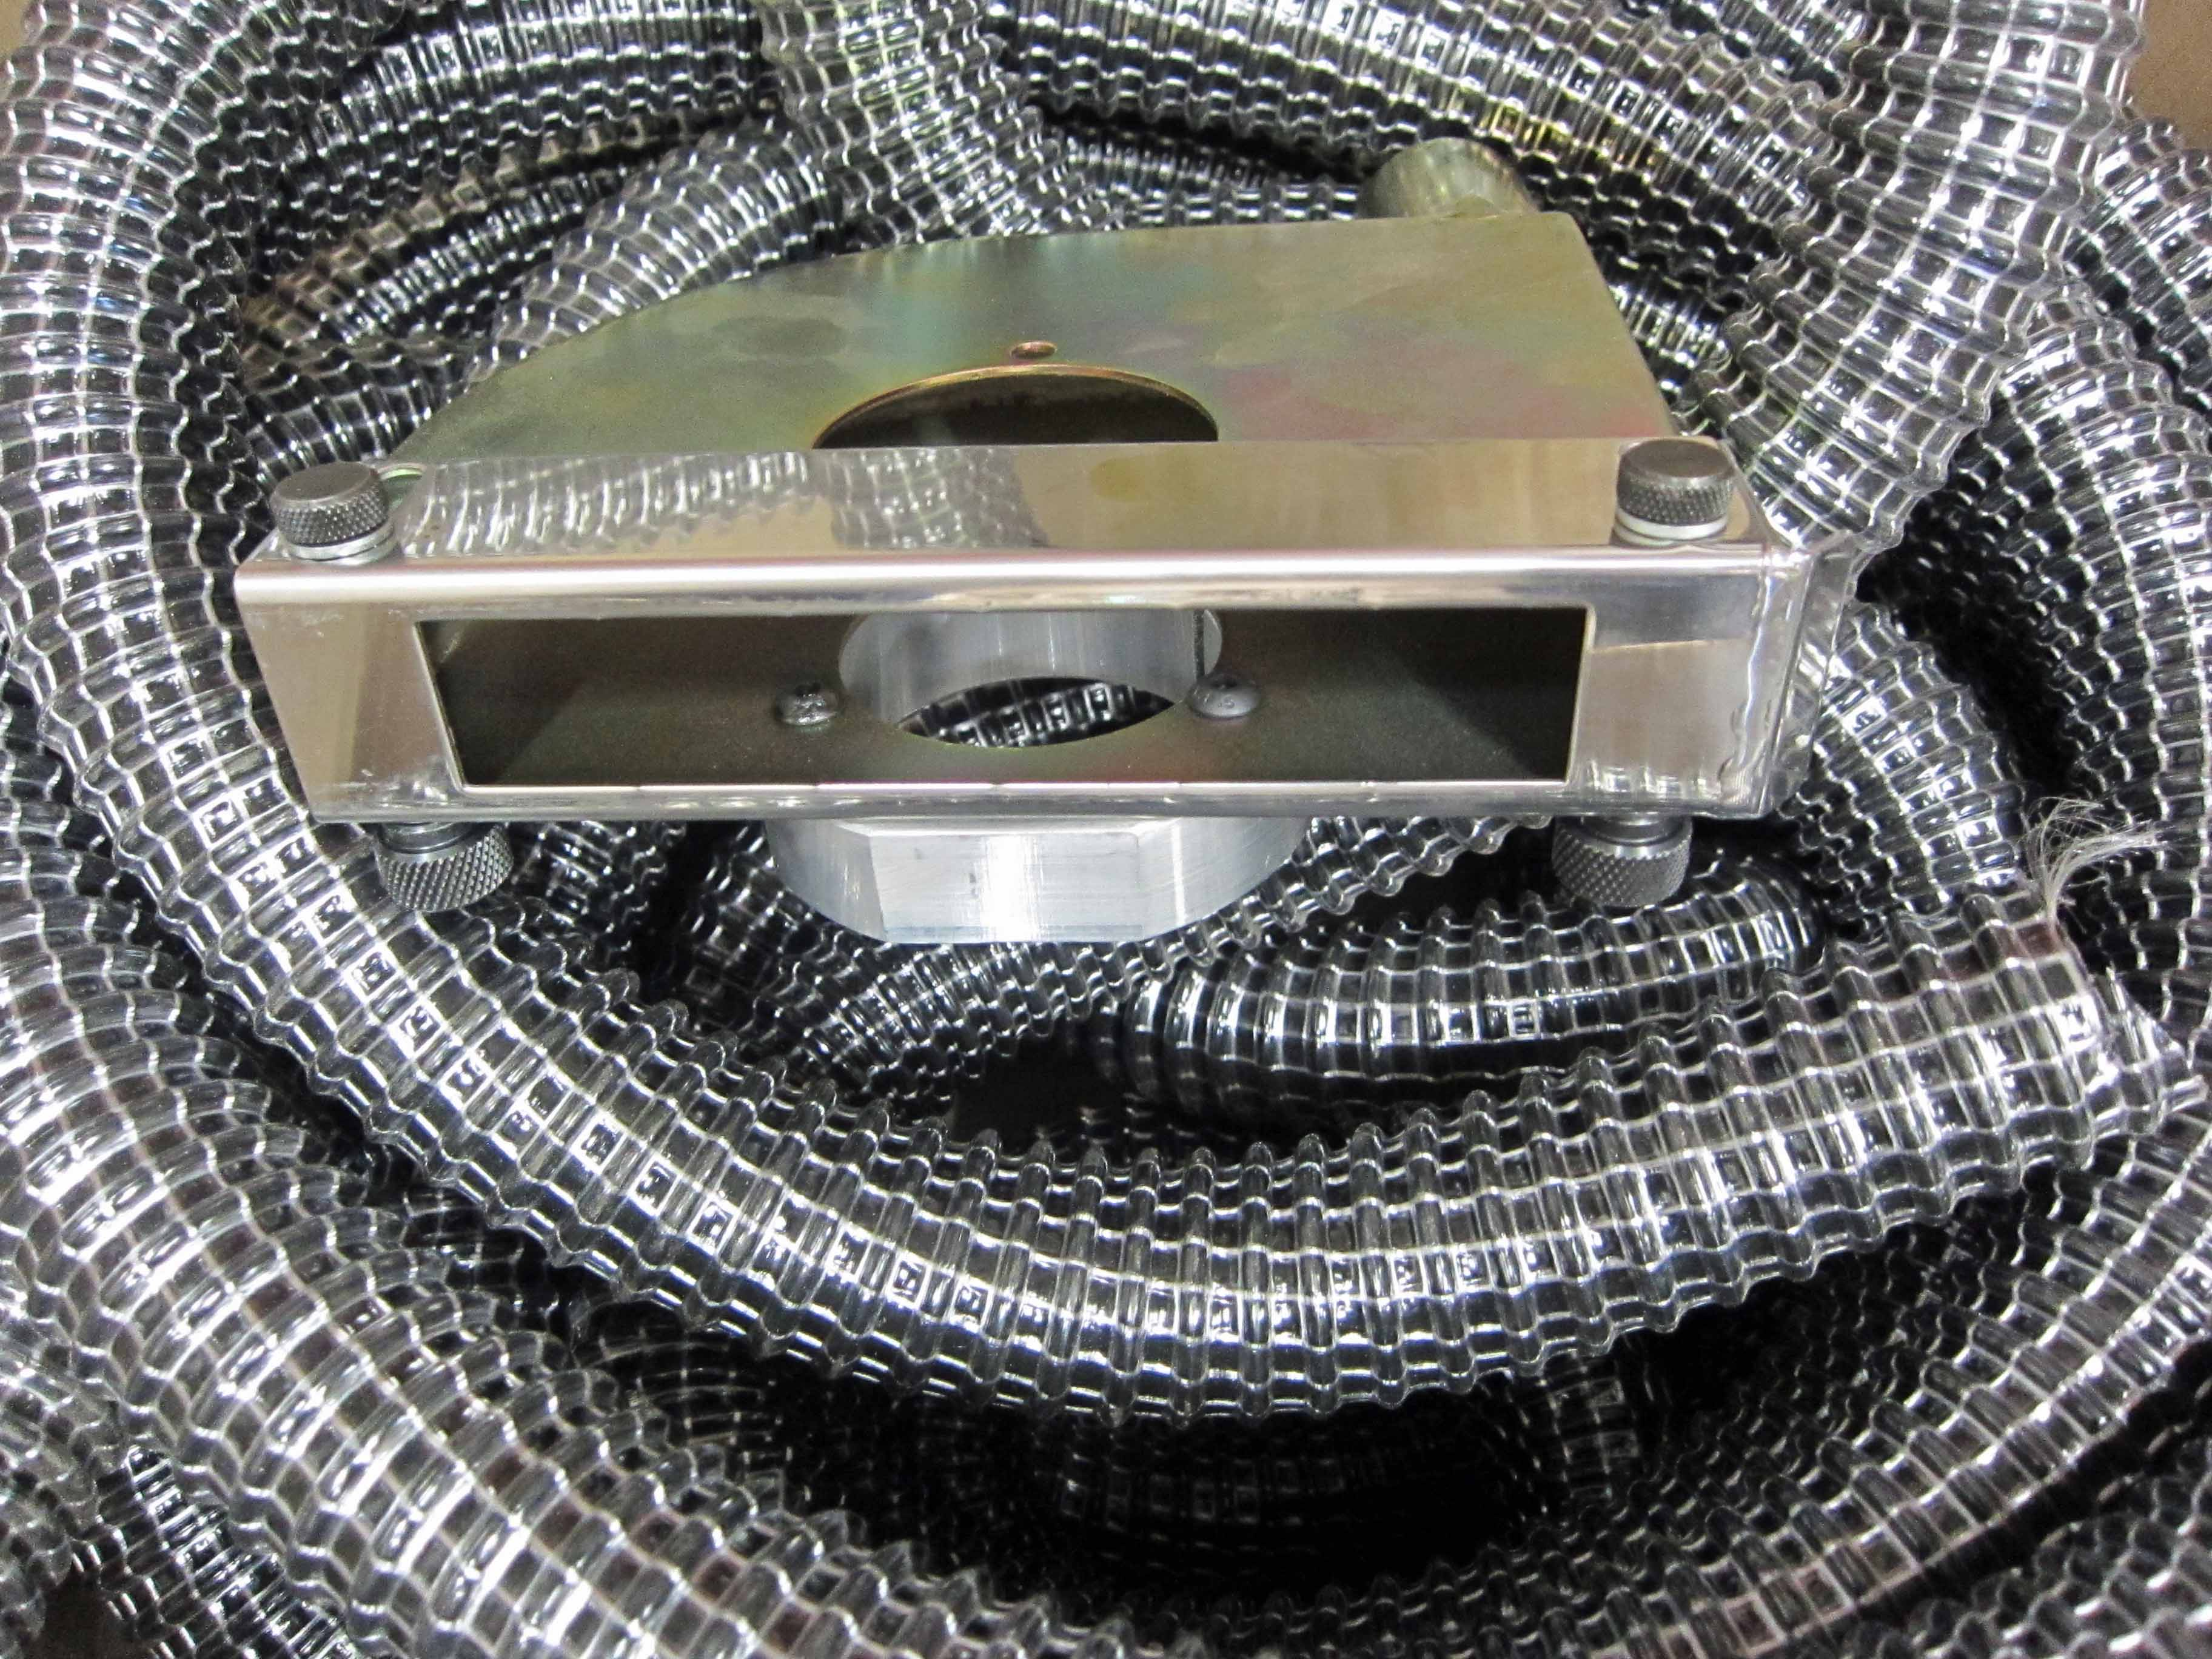 A WELDABILITY SIF Grinding Extraction Head complete with Approx. 15M of Extraction Hose and Coupling - Image 3 of 3